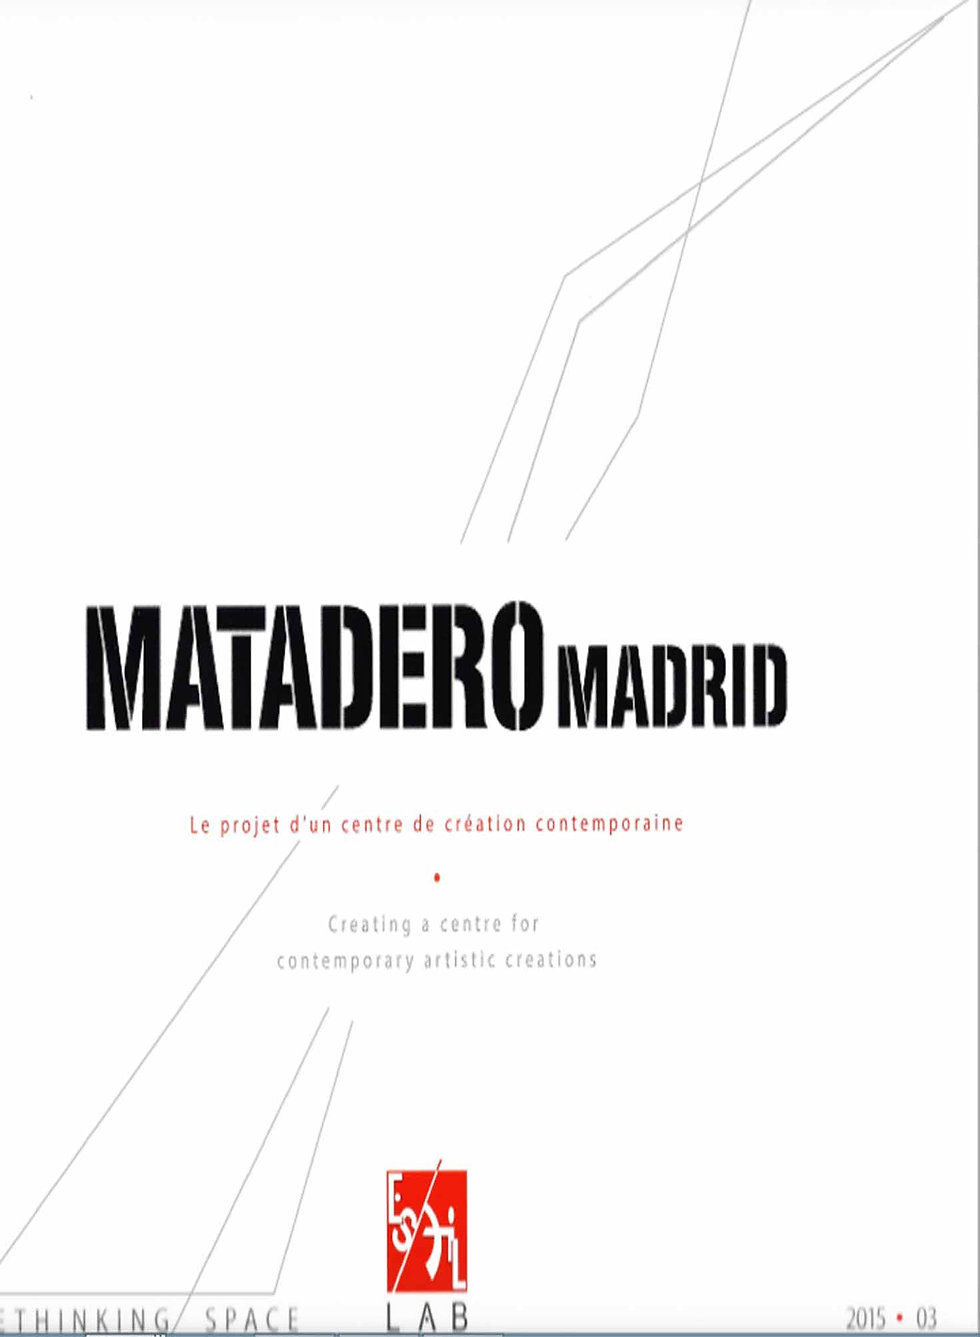 ES MATADERO MADRID READER'S HOUSE